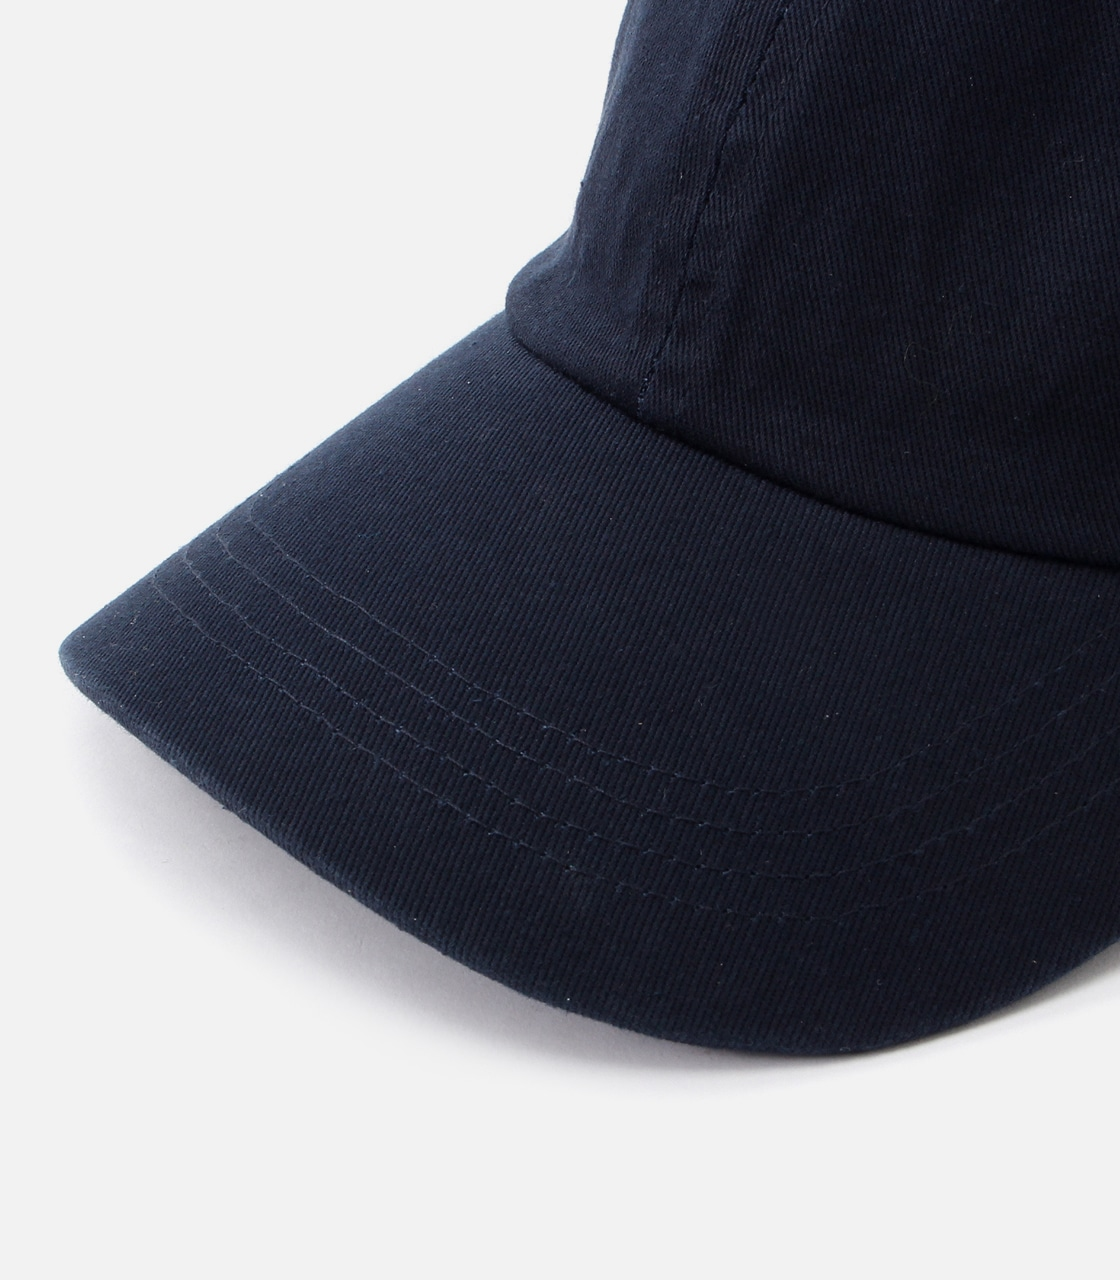 【AZUL BY MOUSSY】BASIC TWILL CAP 【MOOK49掲載 90020】 詳細画像 NVY 5